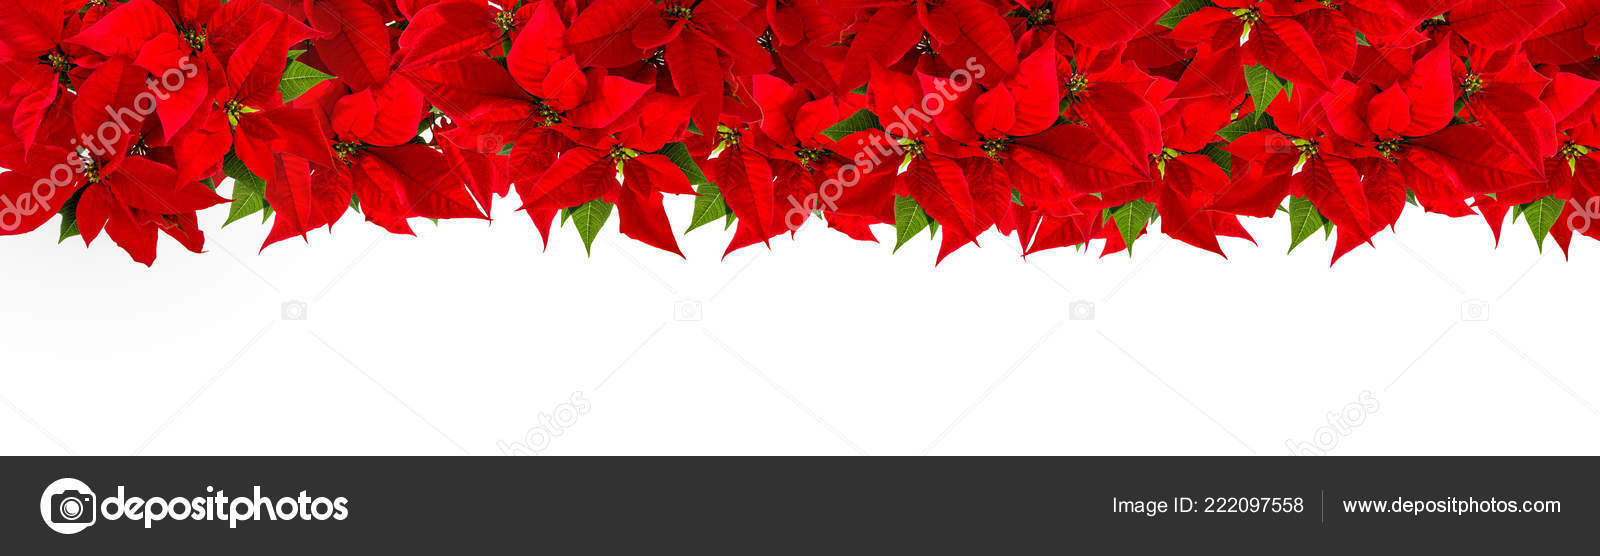 Red Christmas Flower.Christmas Red Flower Poinsettia White Background Floral